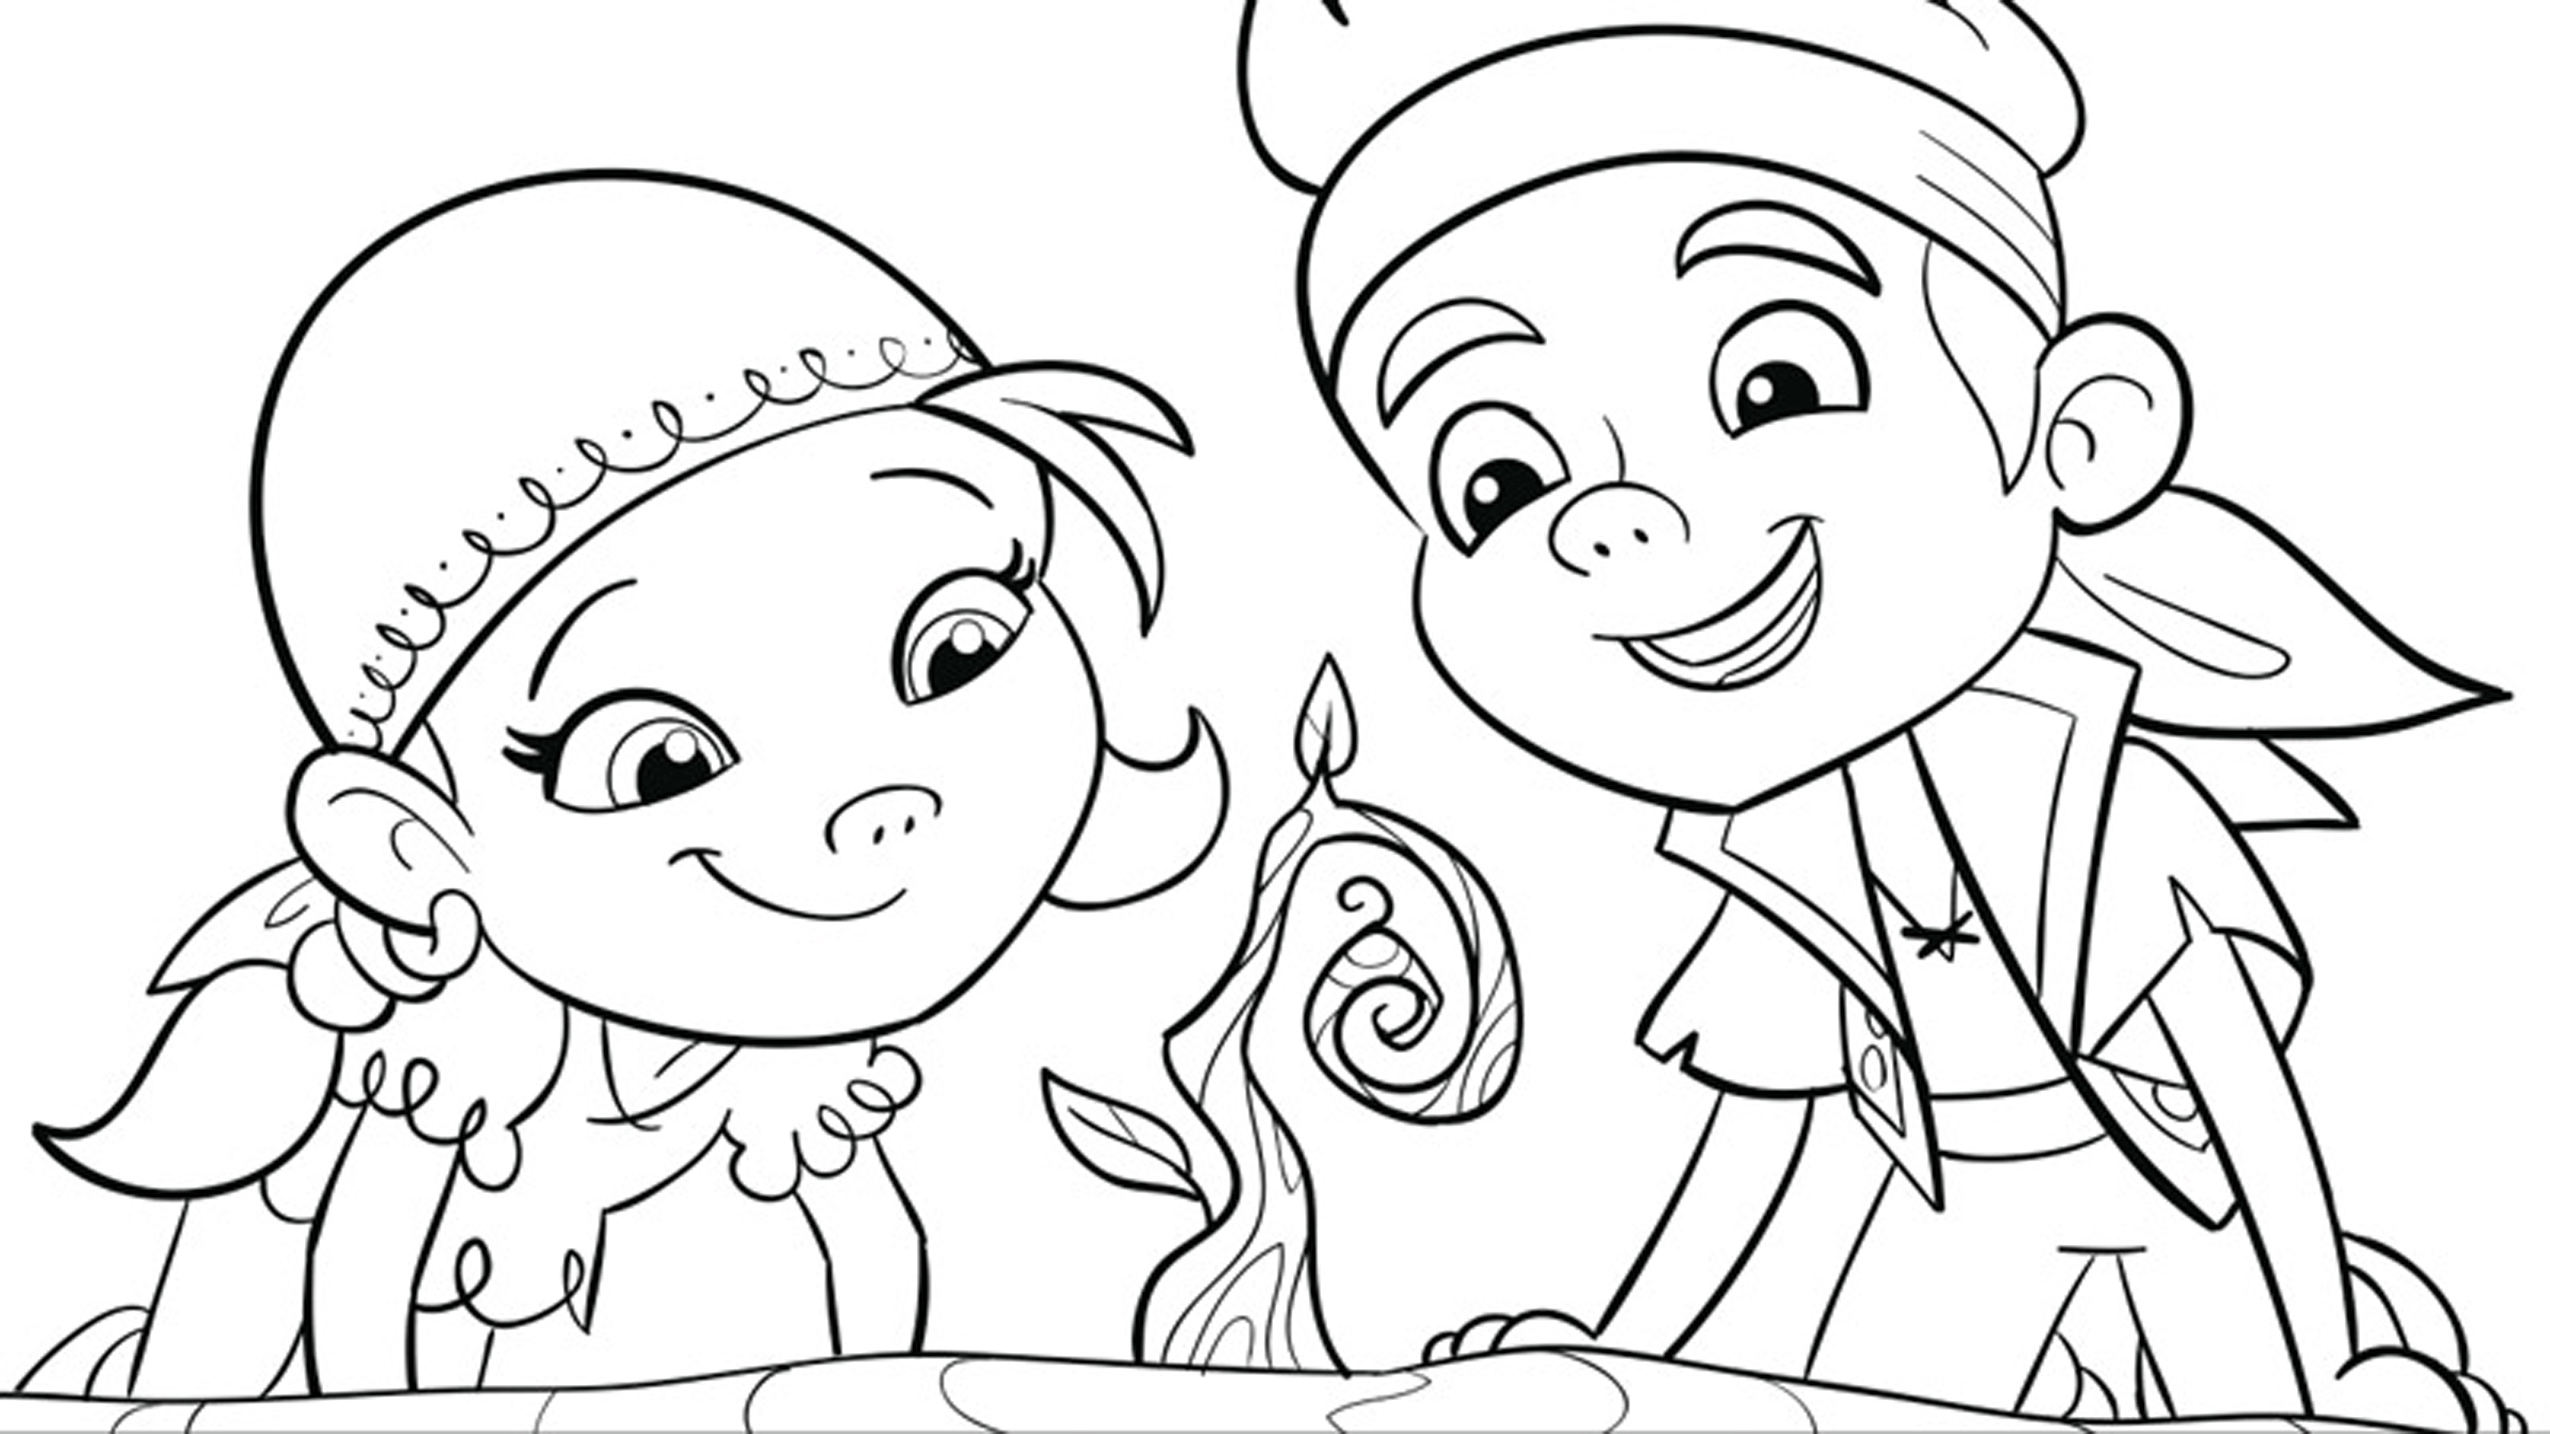 2550x1434 kids playing games puzzle coloring page special jesus and - Children Coloring